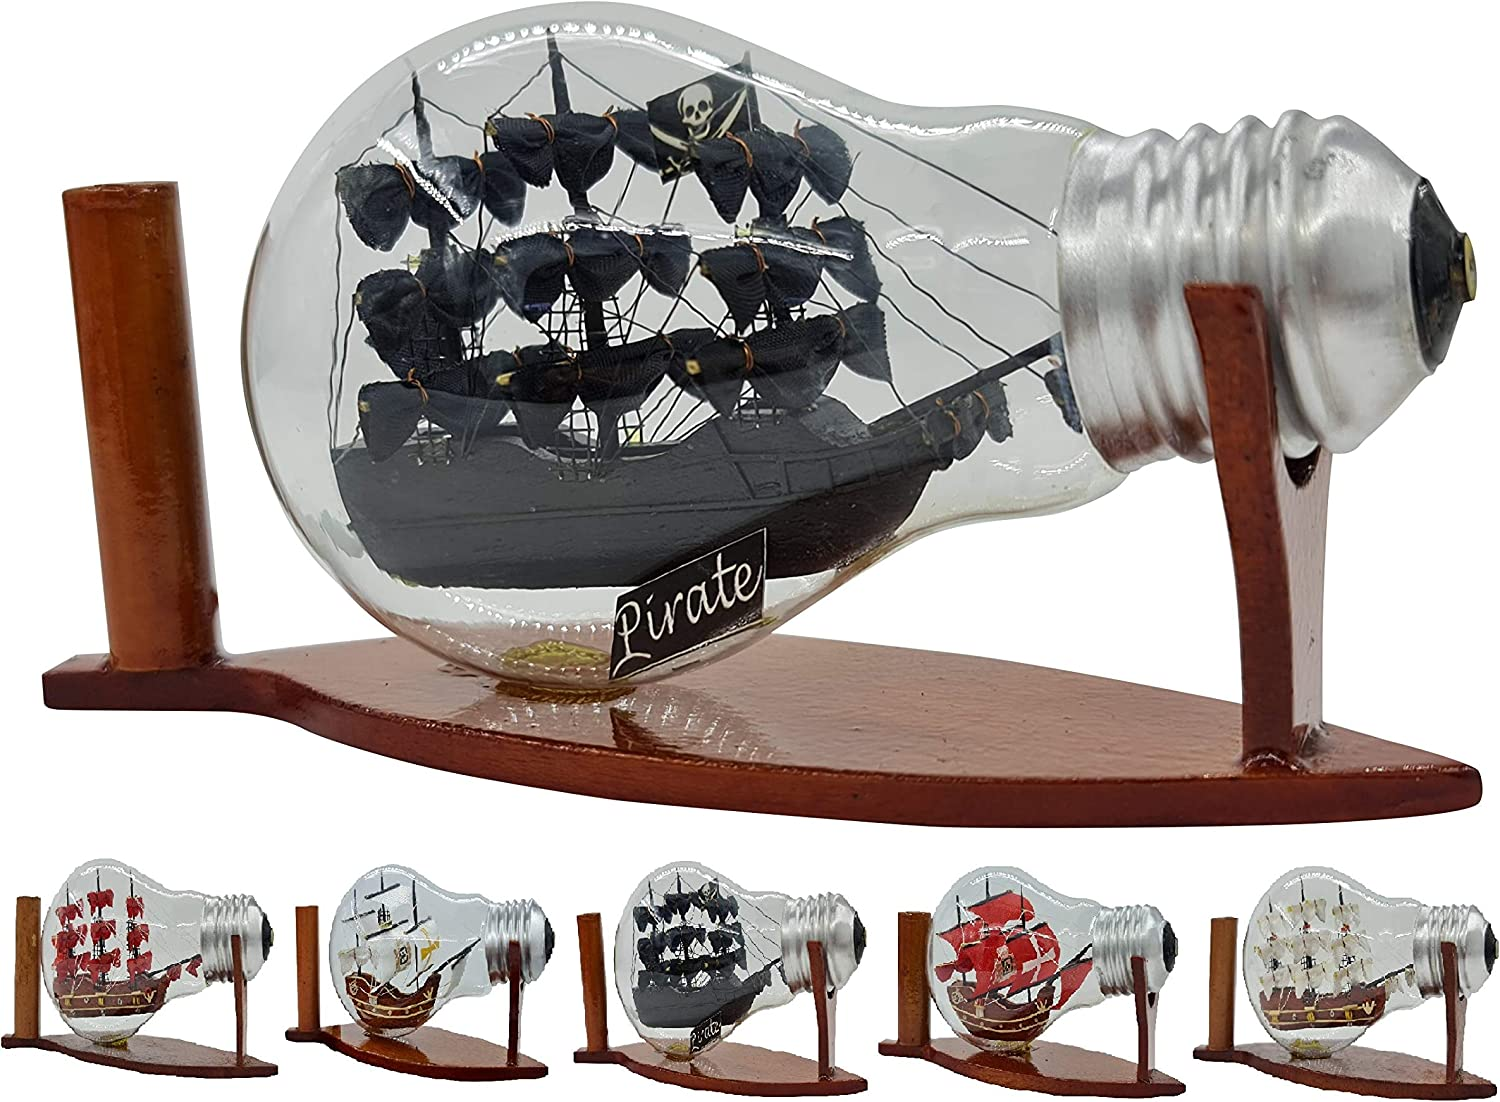 Black Pearl Pirate Ship in a bottle Decorative Glass Nautical Decor Decoration Collection Display Unique Gift Handmade (LAMP-444)